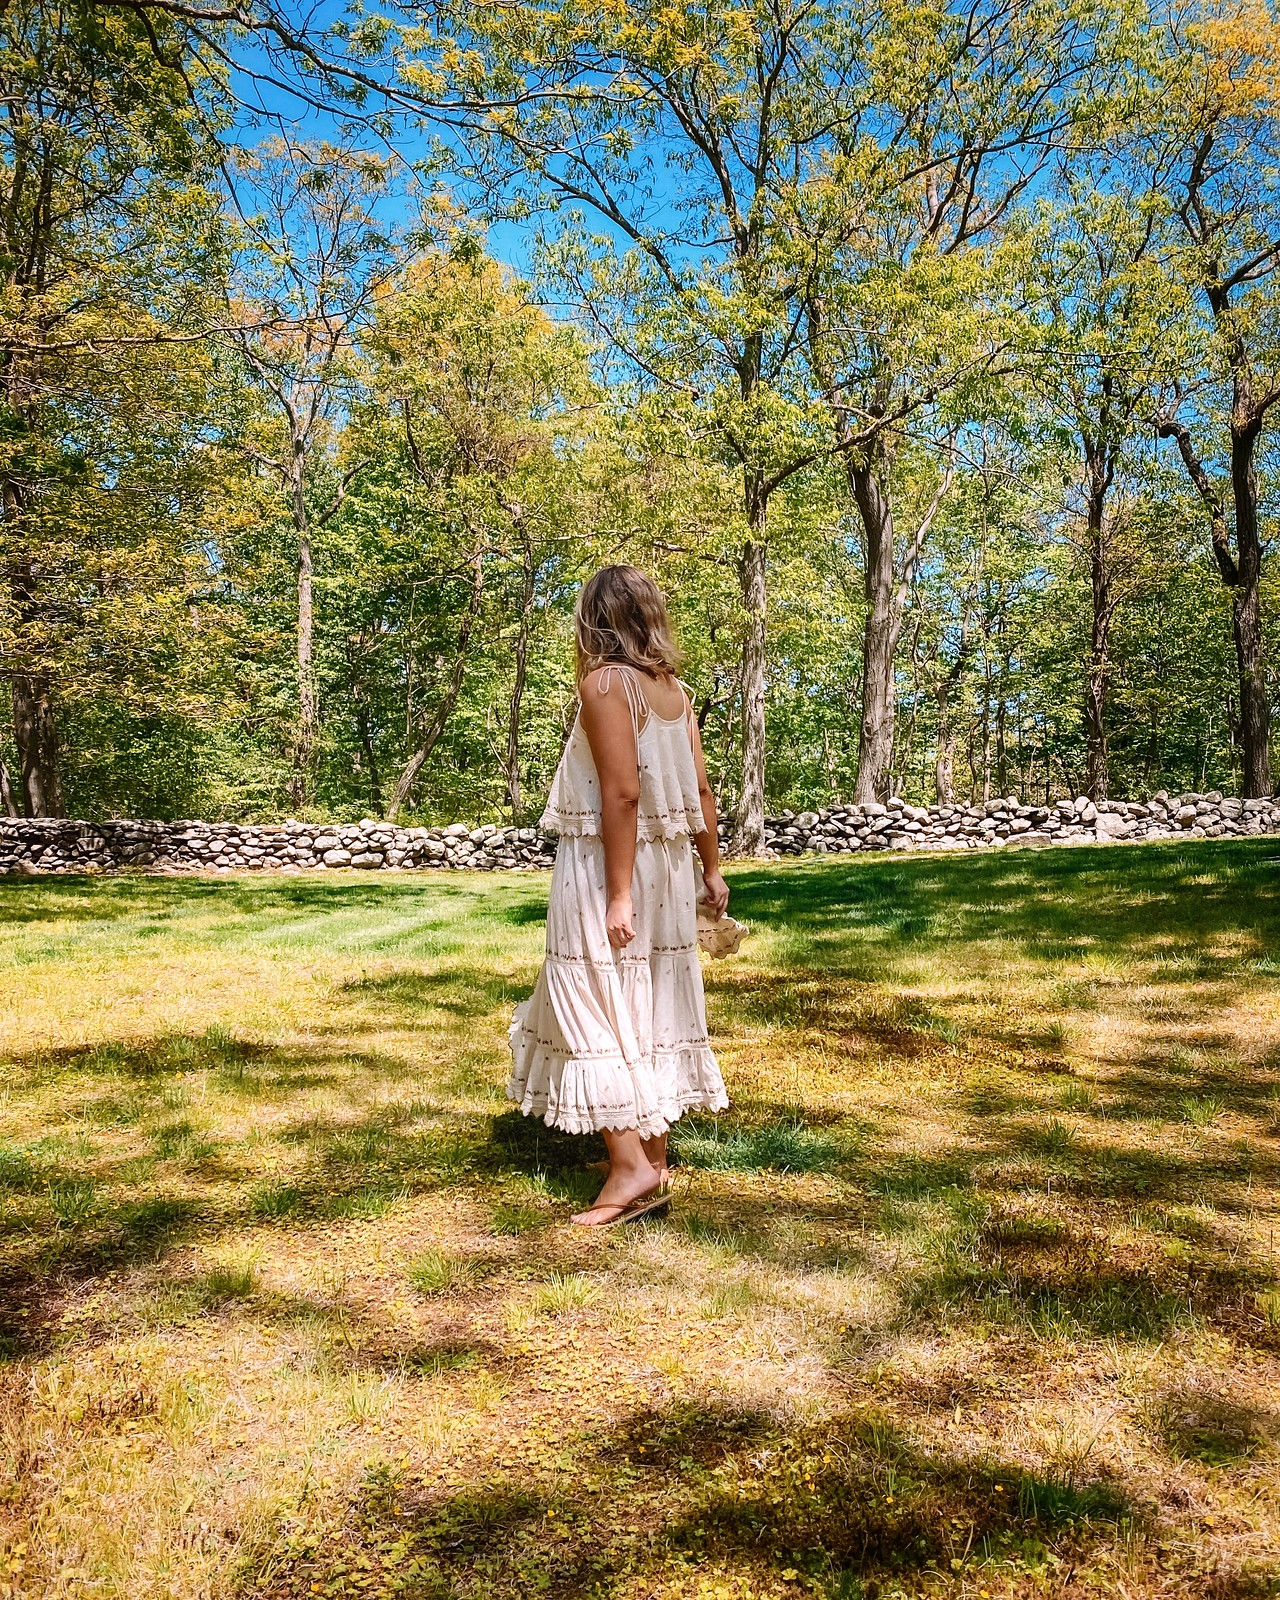 Forest Fairy | Bohemian Boho Off White Midi Dress | Country Girl Summer | The Best Little White Dresses Under $50 for Summer | Summer Outfit Ideas | LWD Little White Dress | Casual Outfit Inspiration